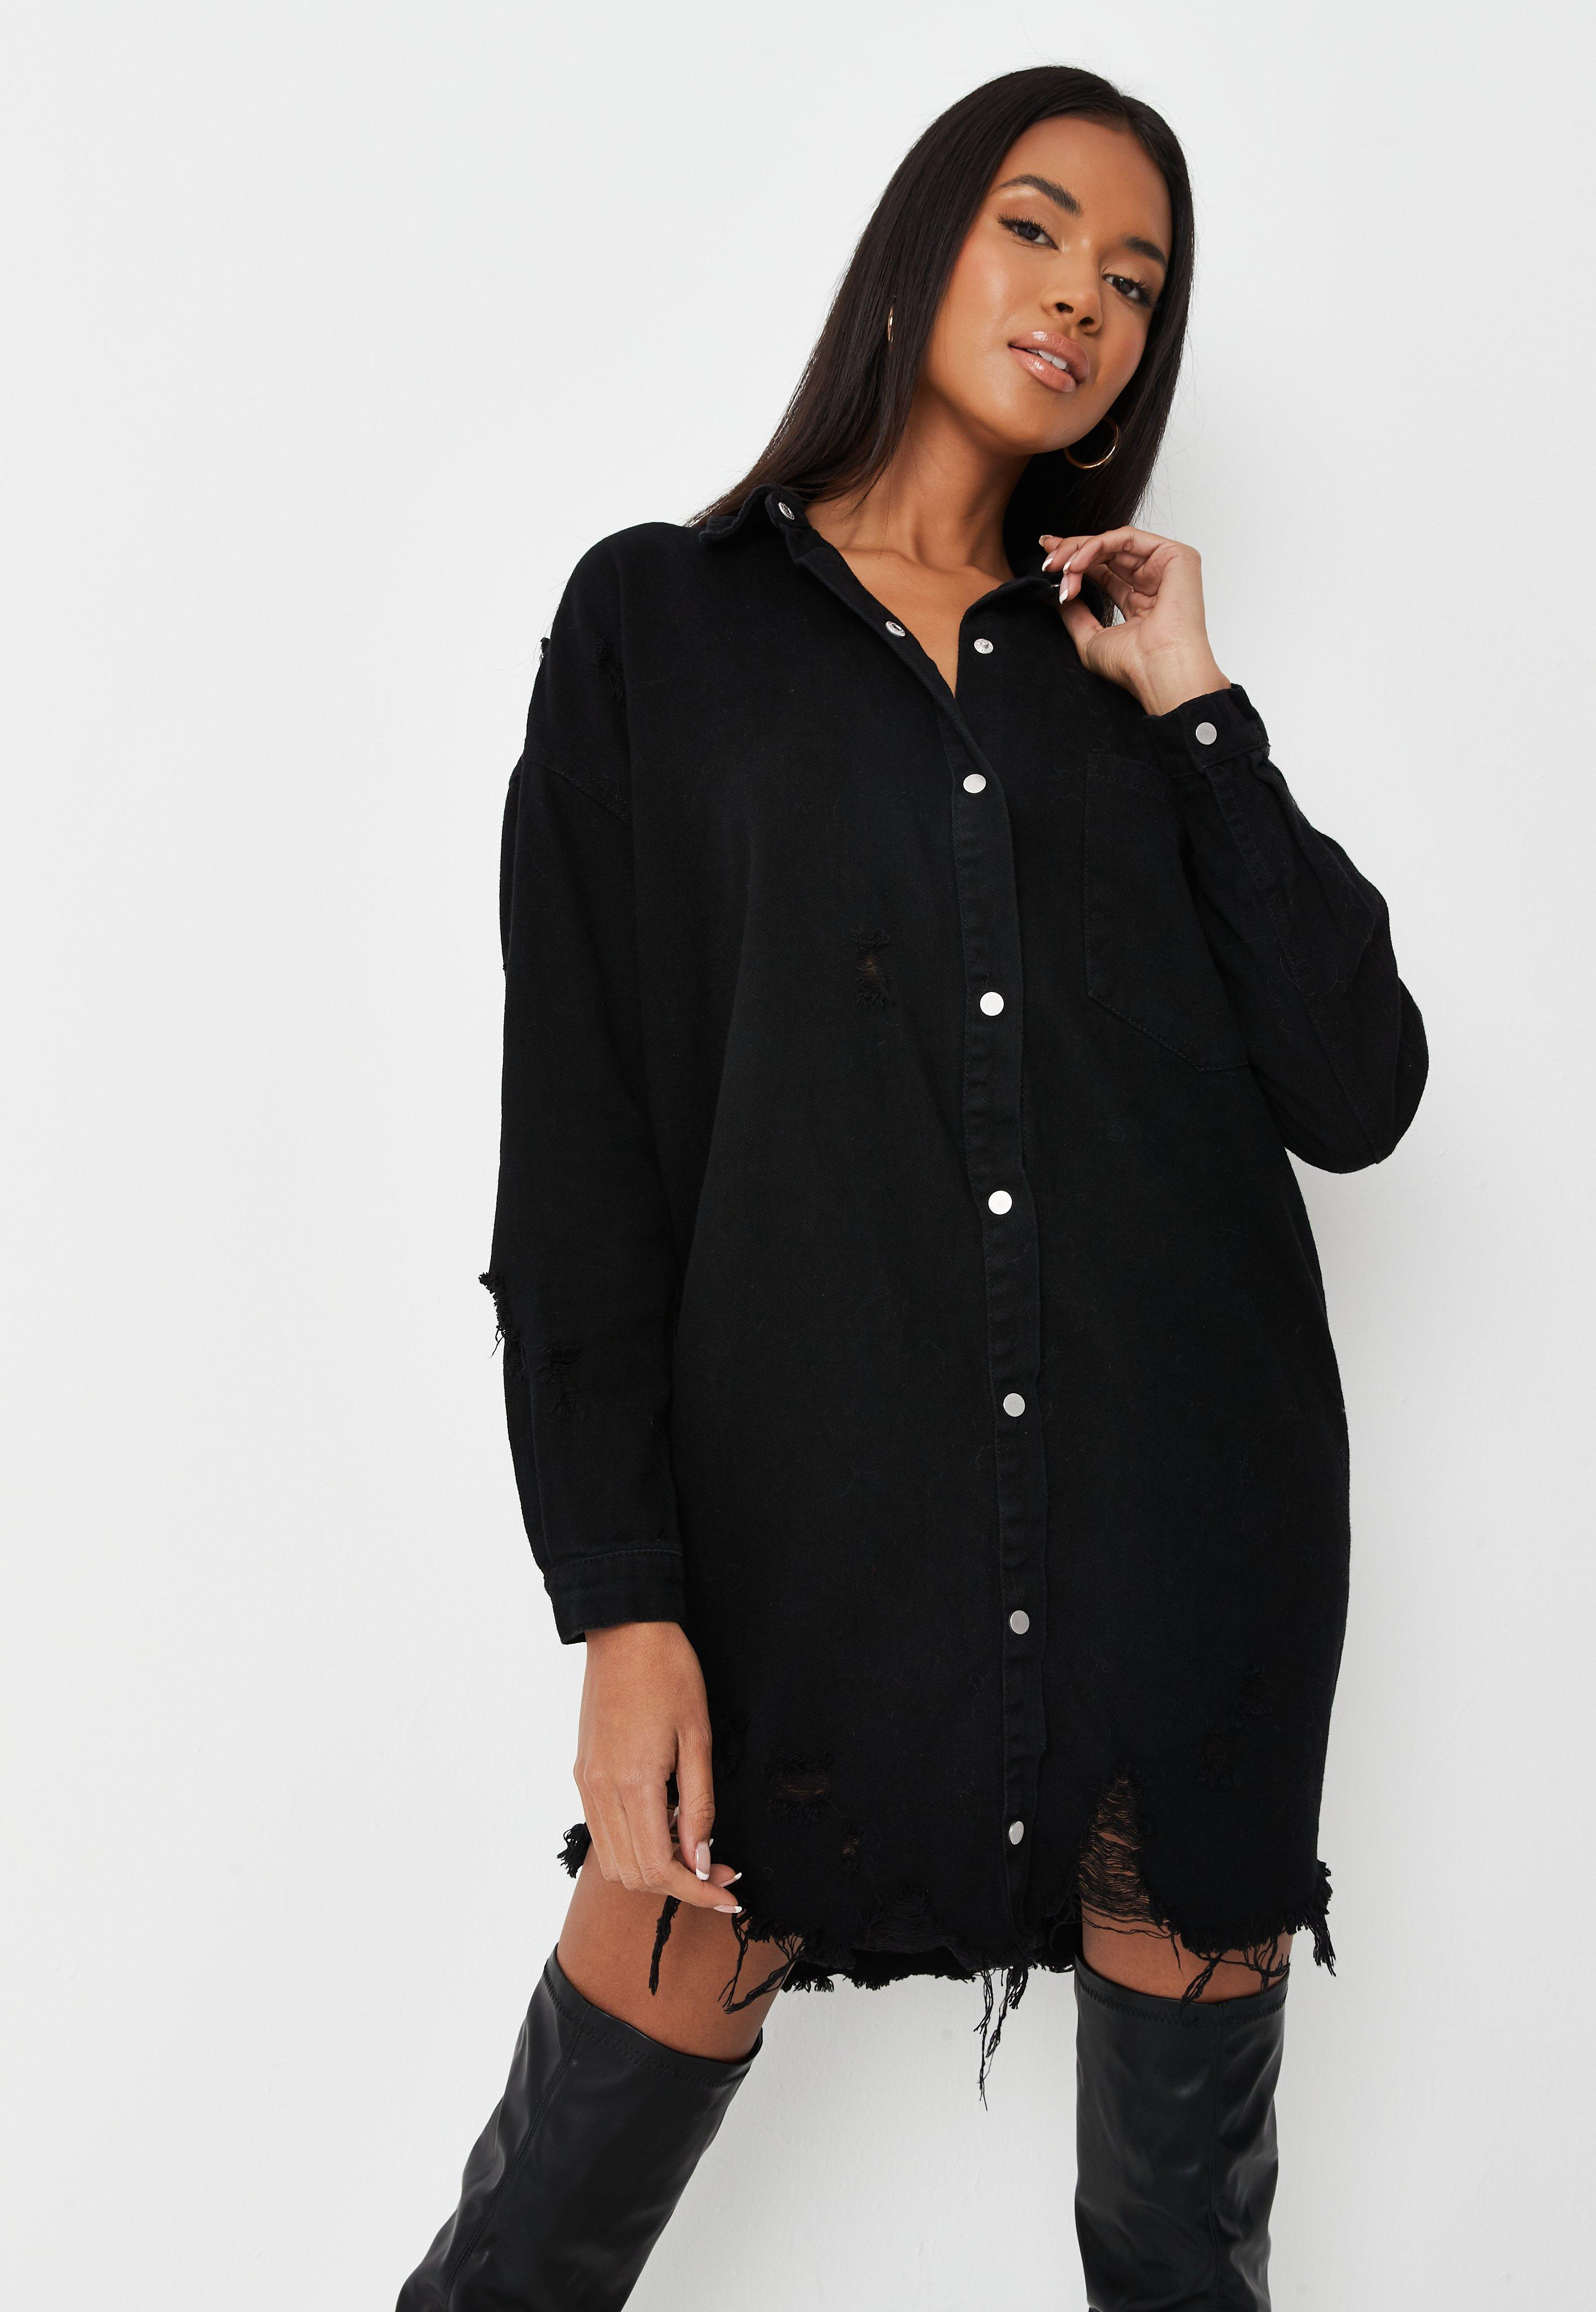 ad34c120c3fe Shirt Dresses | Button Shirt Dresses - Missguided